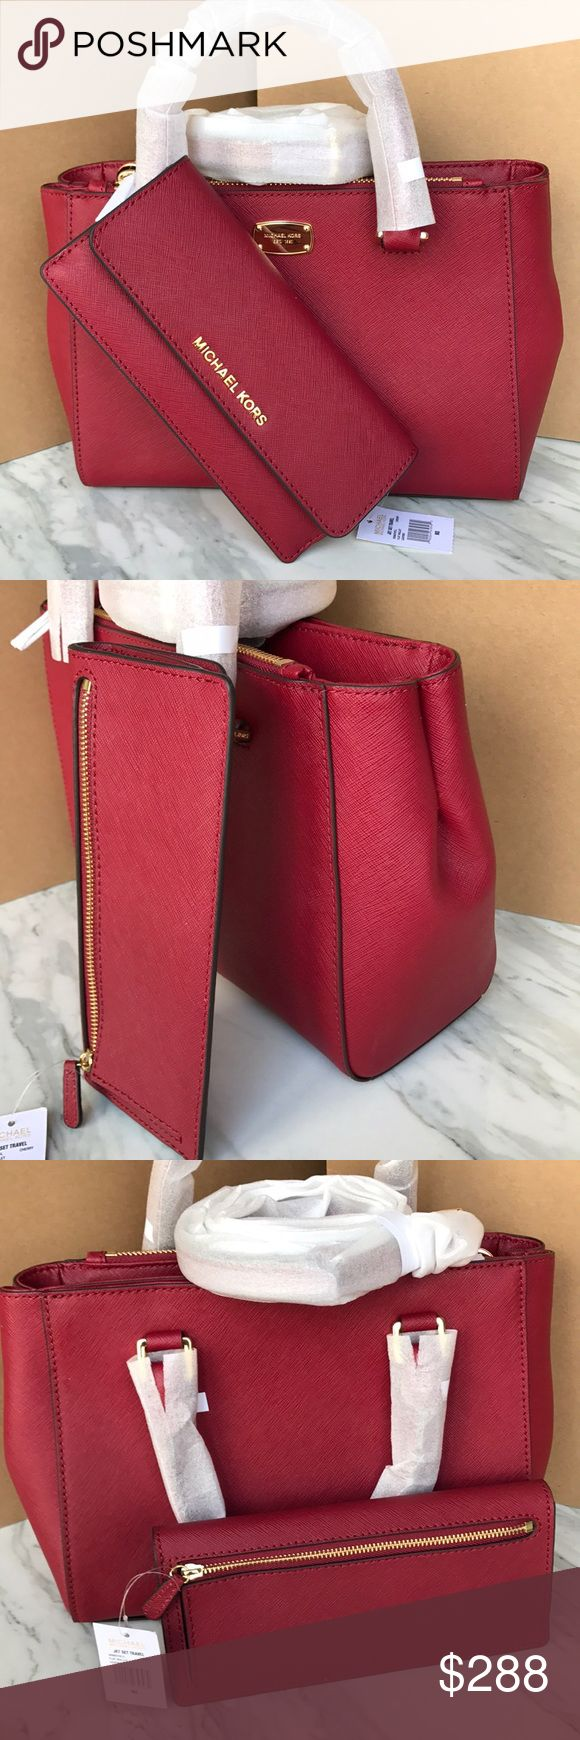 🍒🍒mk Satchel set🍒crossbody/Kellen cherry color Both bag and wallet authentic brand new with tags. Cherry color gold hard wear. Purse strap removable . Kellen bag style both 100% saffiano leather. 10x7.5x3.5. Wallet has zip pocket in back Michael Kors Bags Satchels